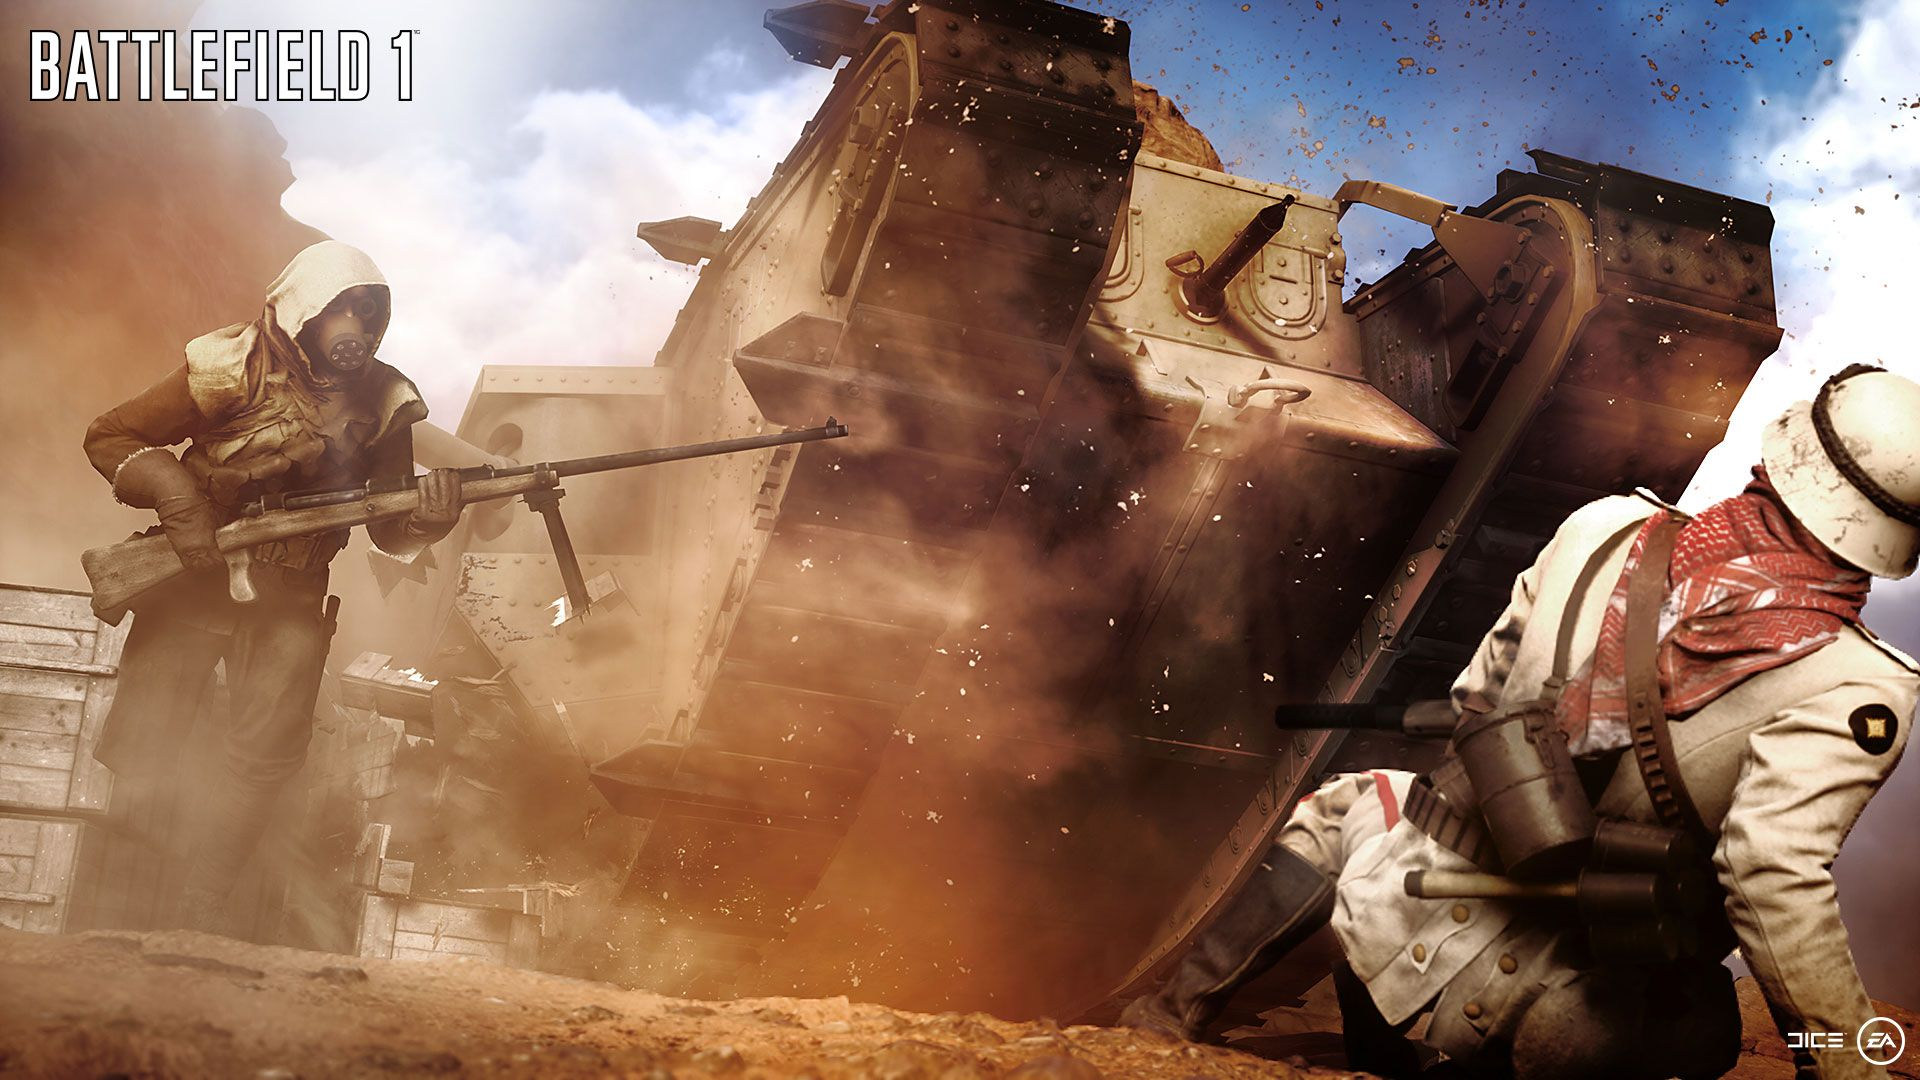 Battlefield 1 Will Be Shown Off At This EA Event In June Battlefield1 Reveal 07.0